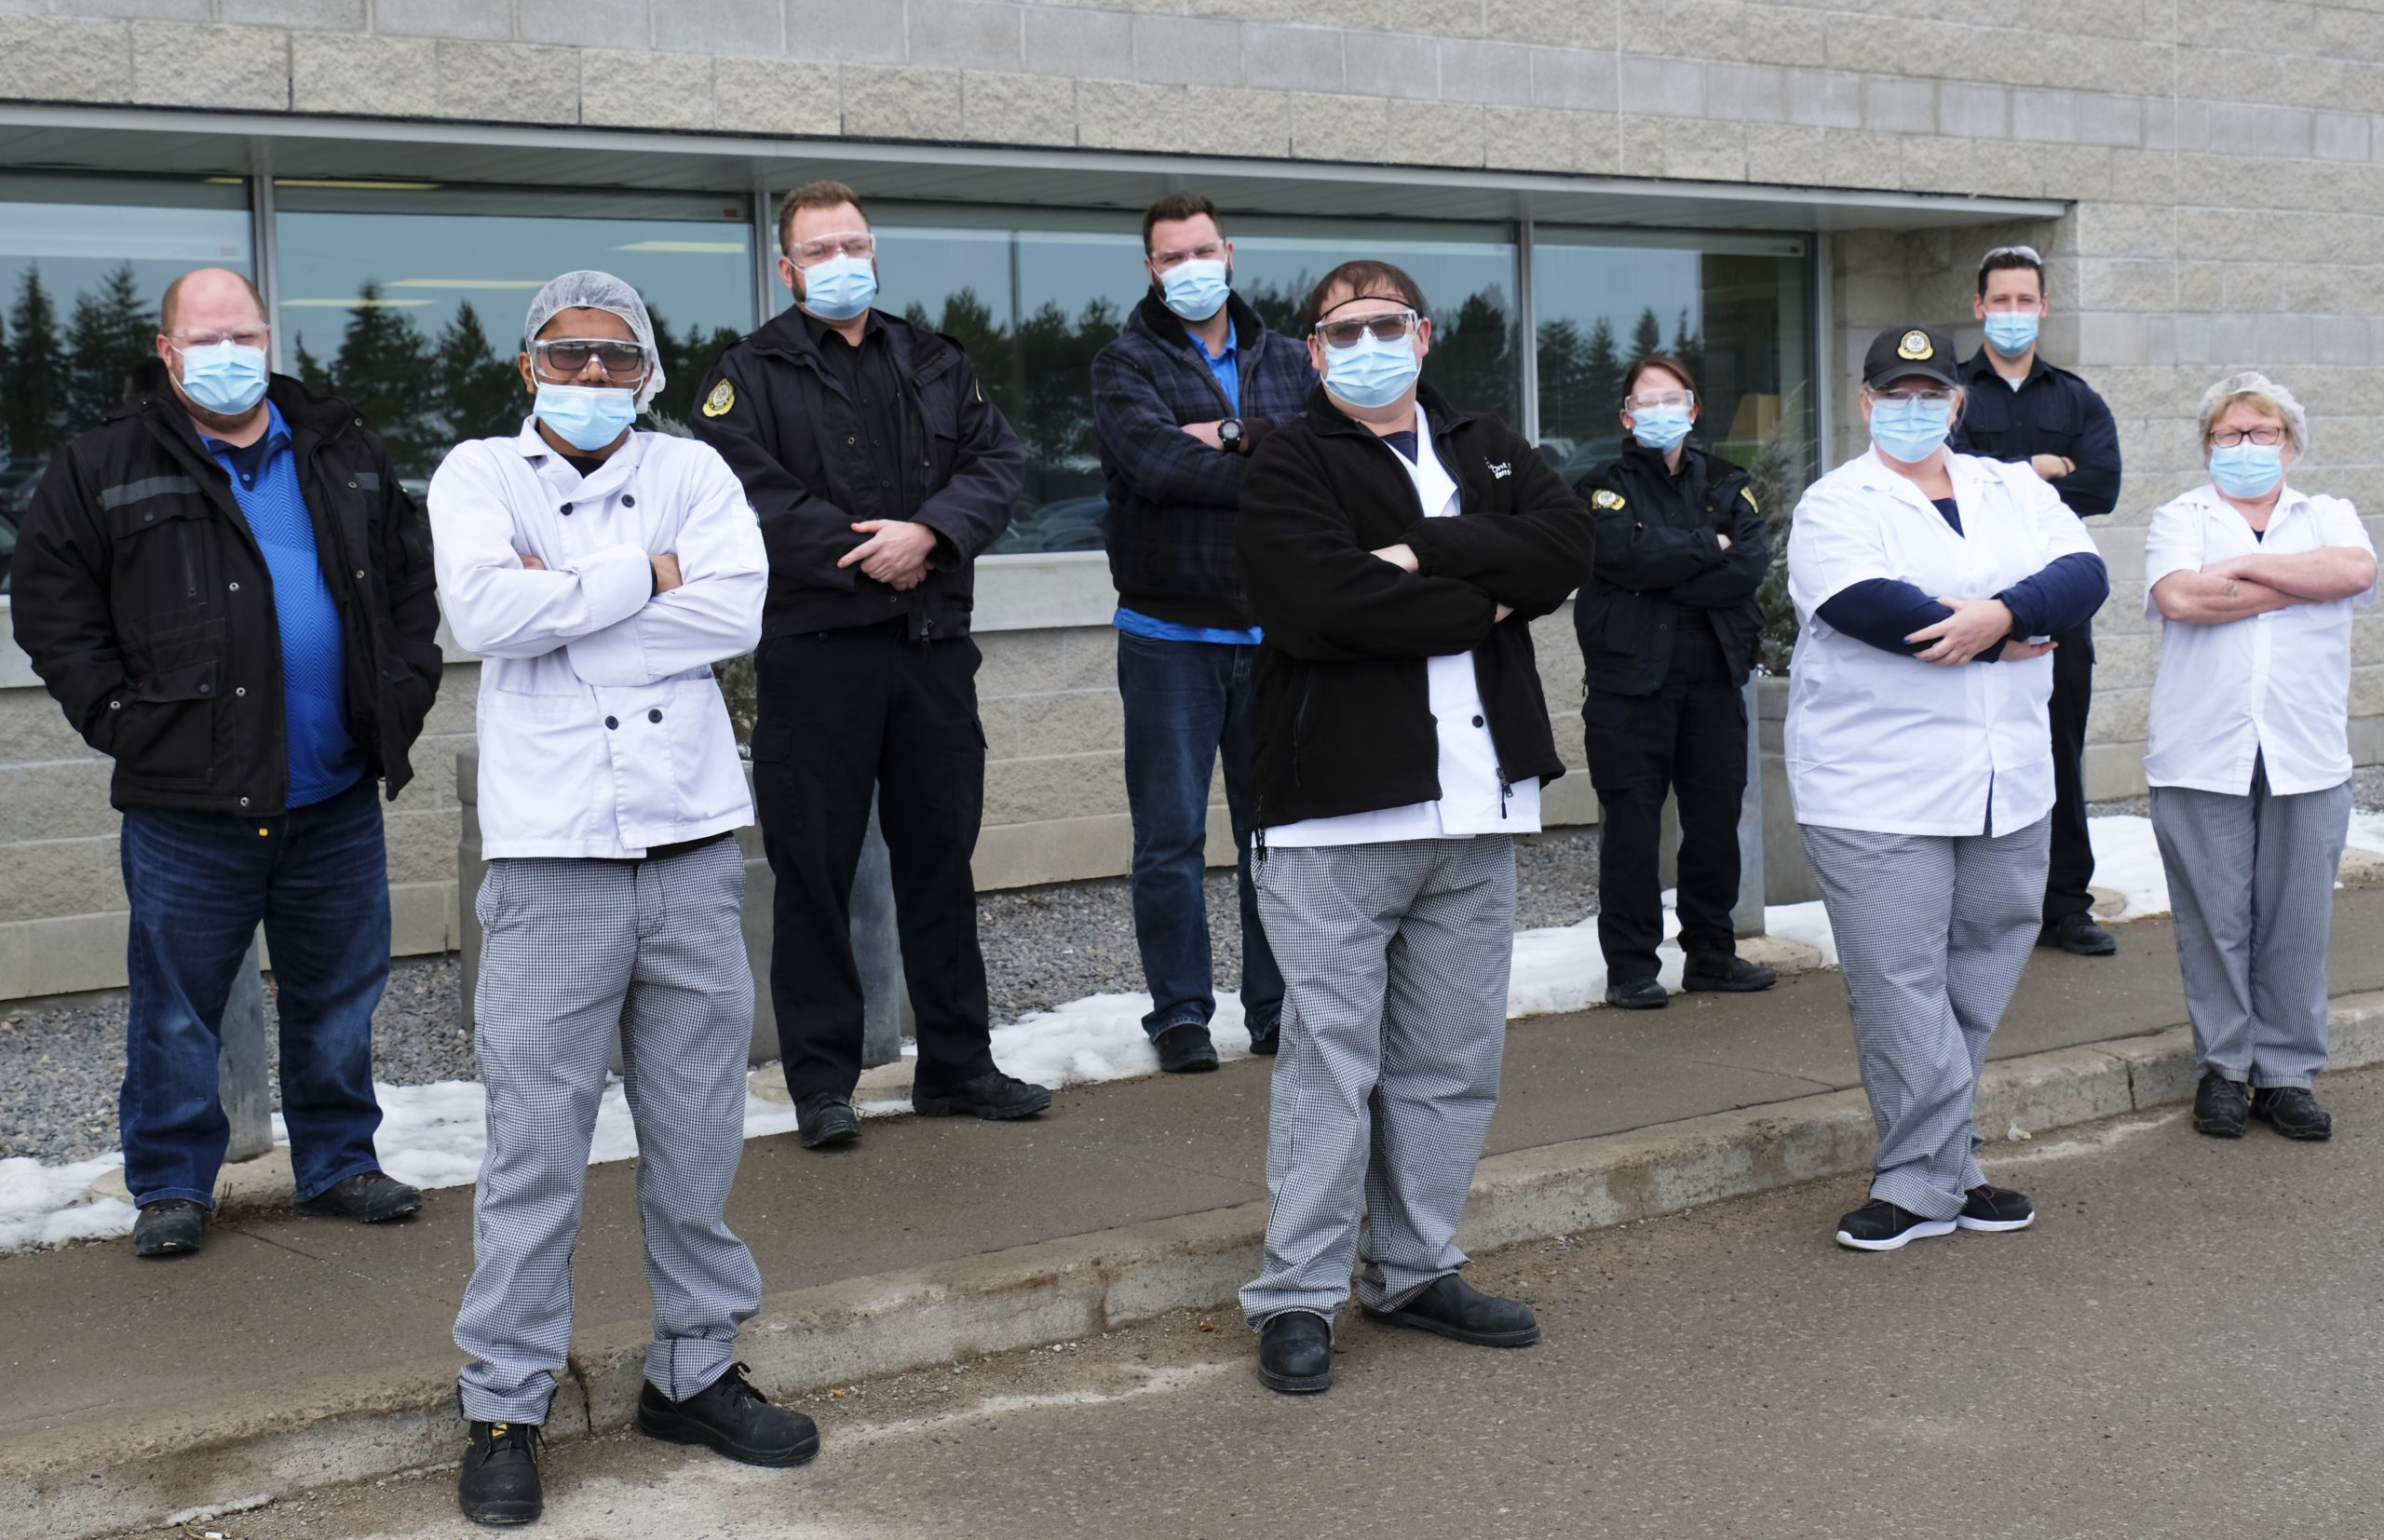 Nine union members standing outside of the Central East Correctional Facility in Lindsay ON